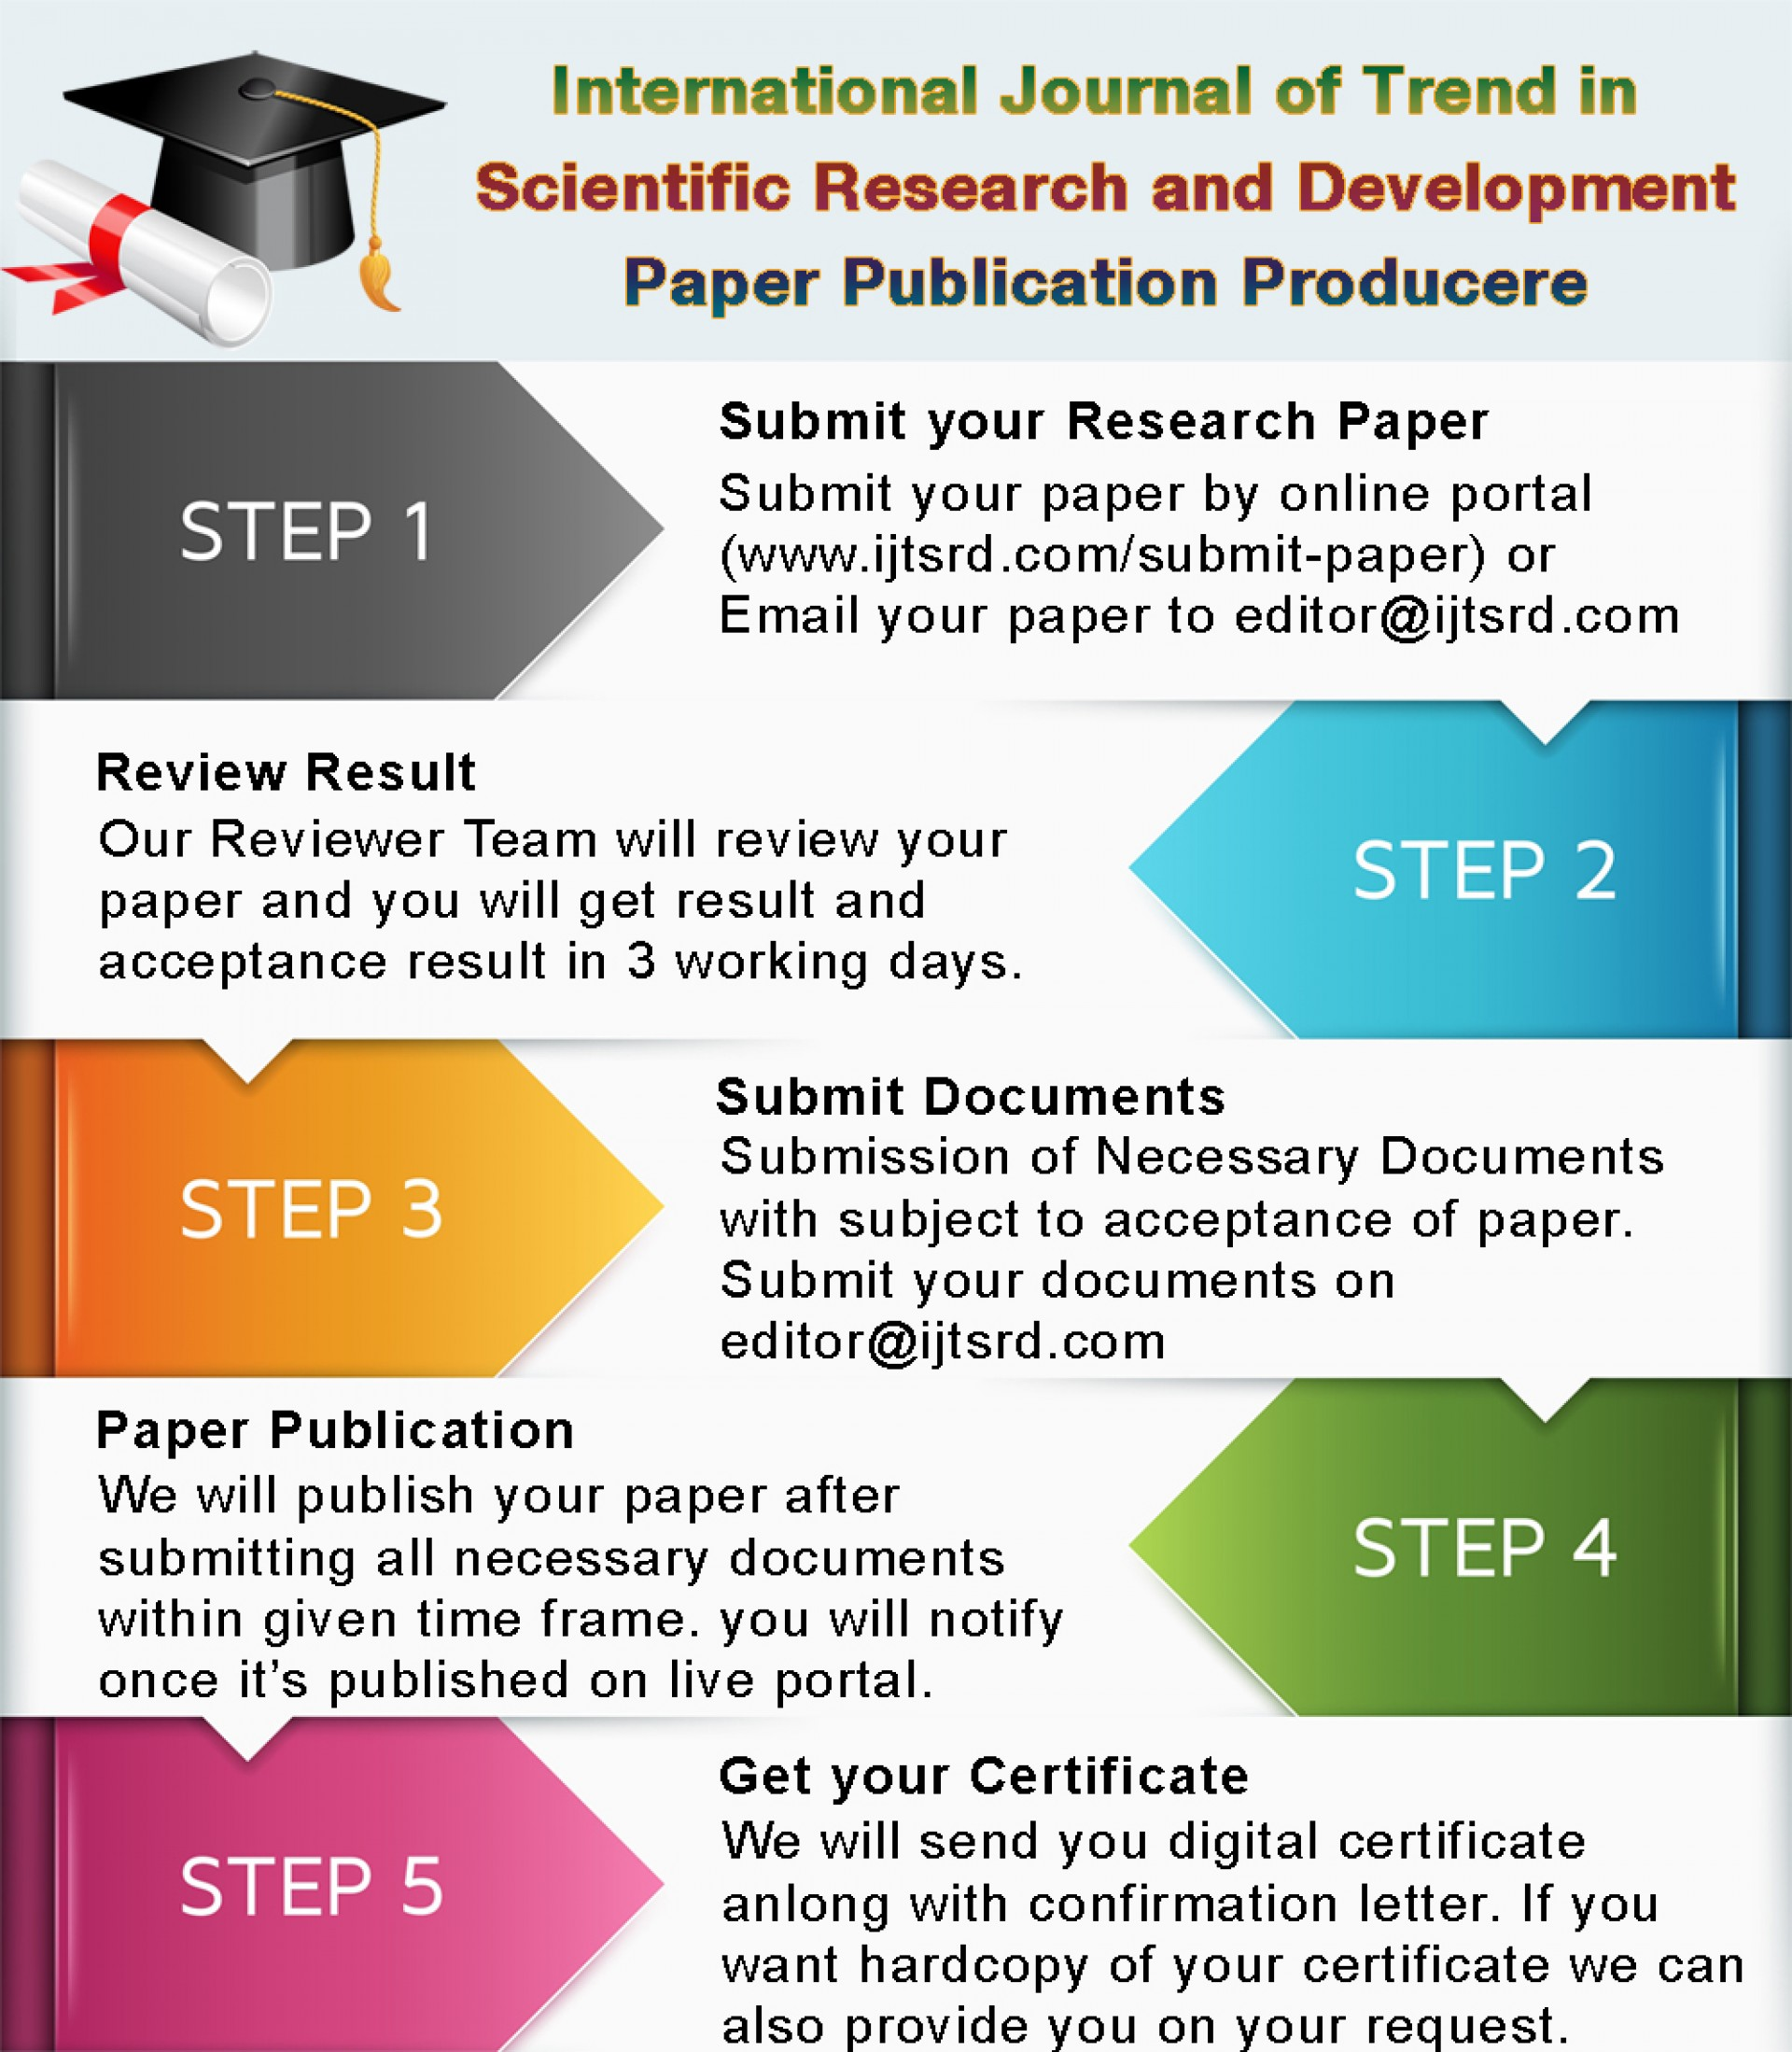 017 Research Paper Papers Online Publish Singular Find Free On Food Ordering System Grocery Shopping In India 1920